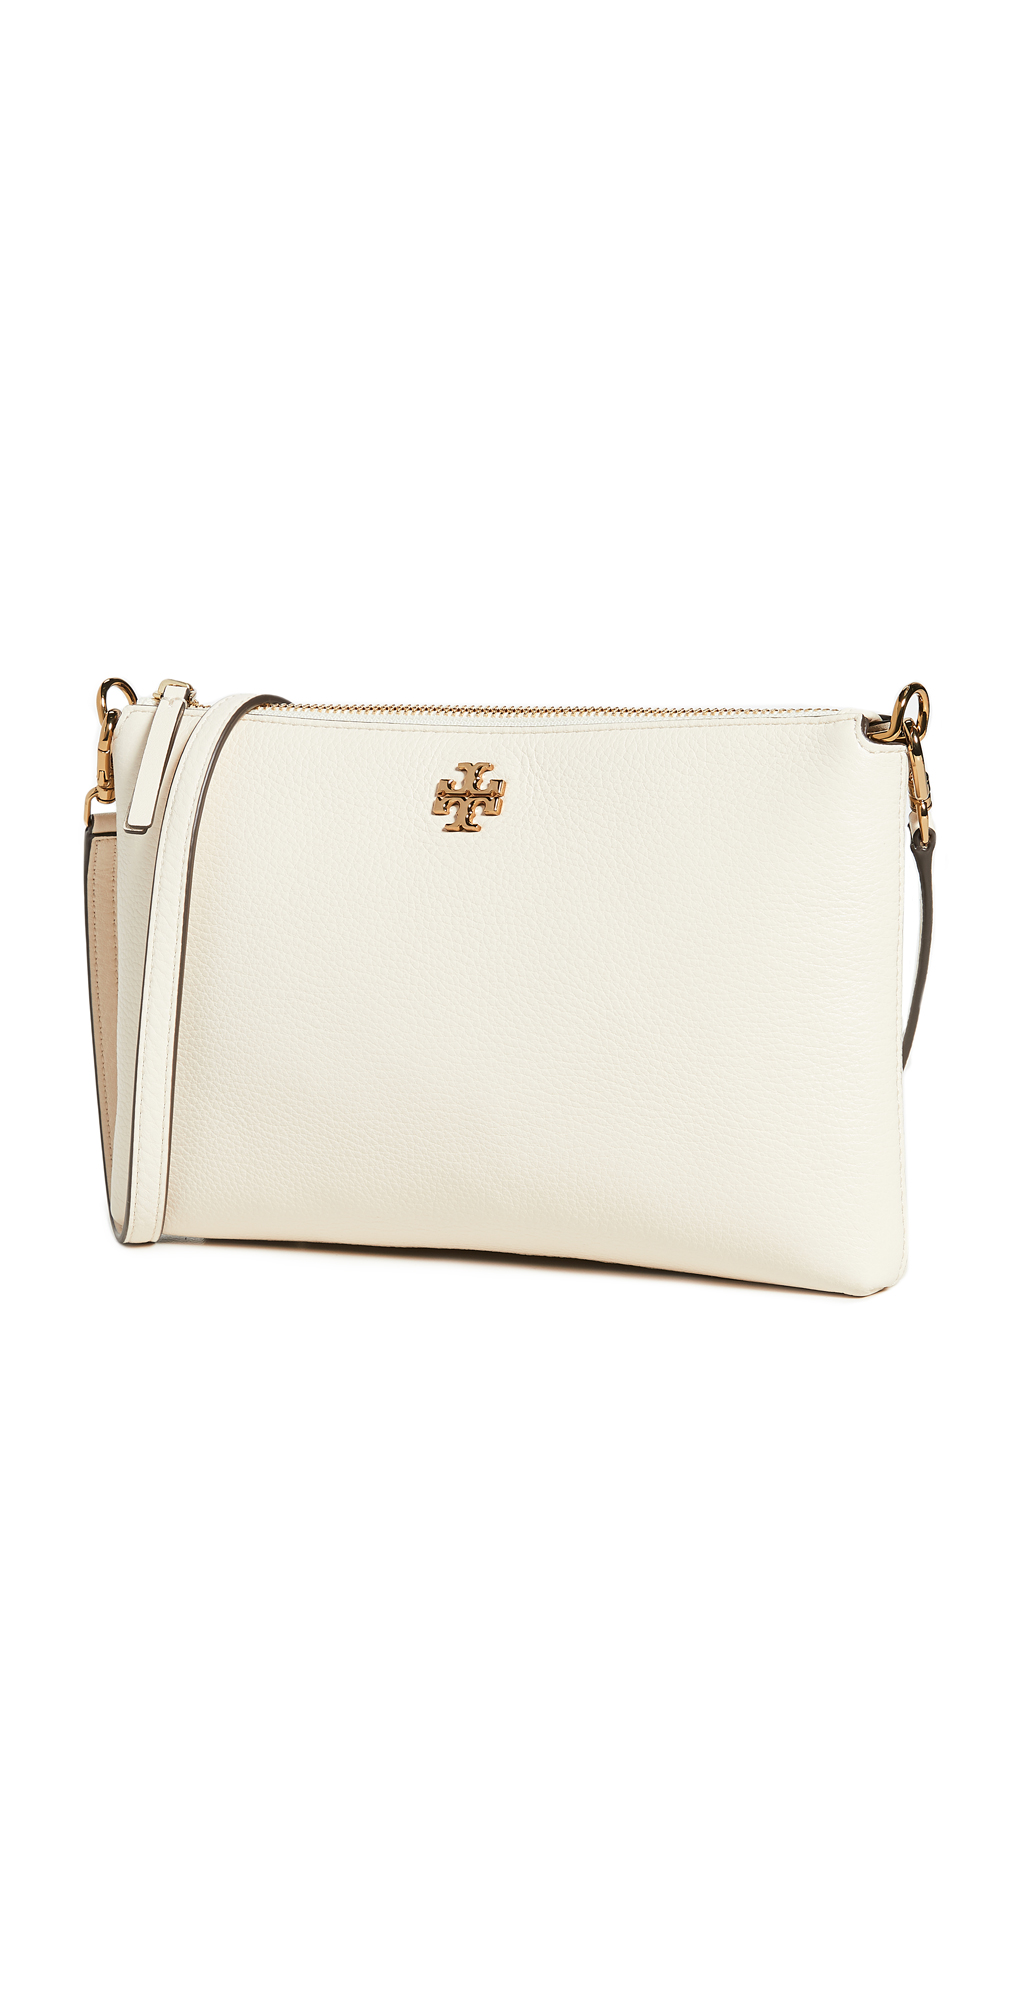 Tory Burch Kira Crossbody Bag